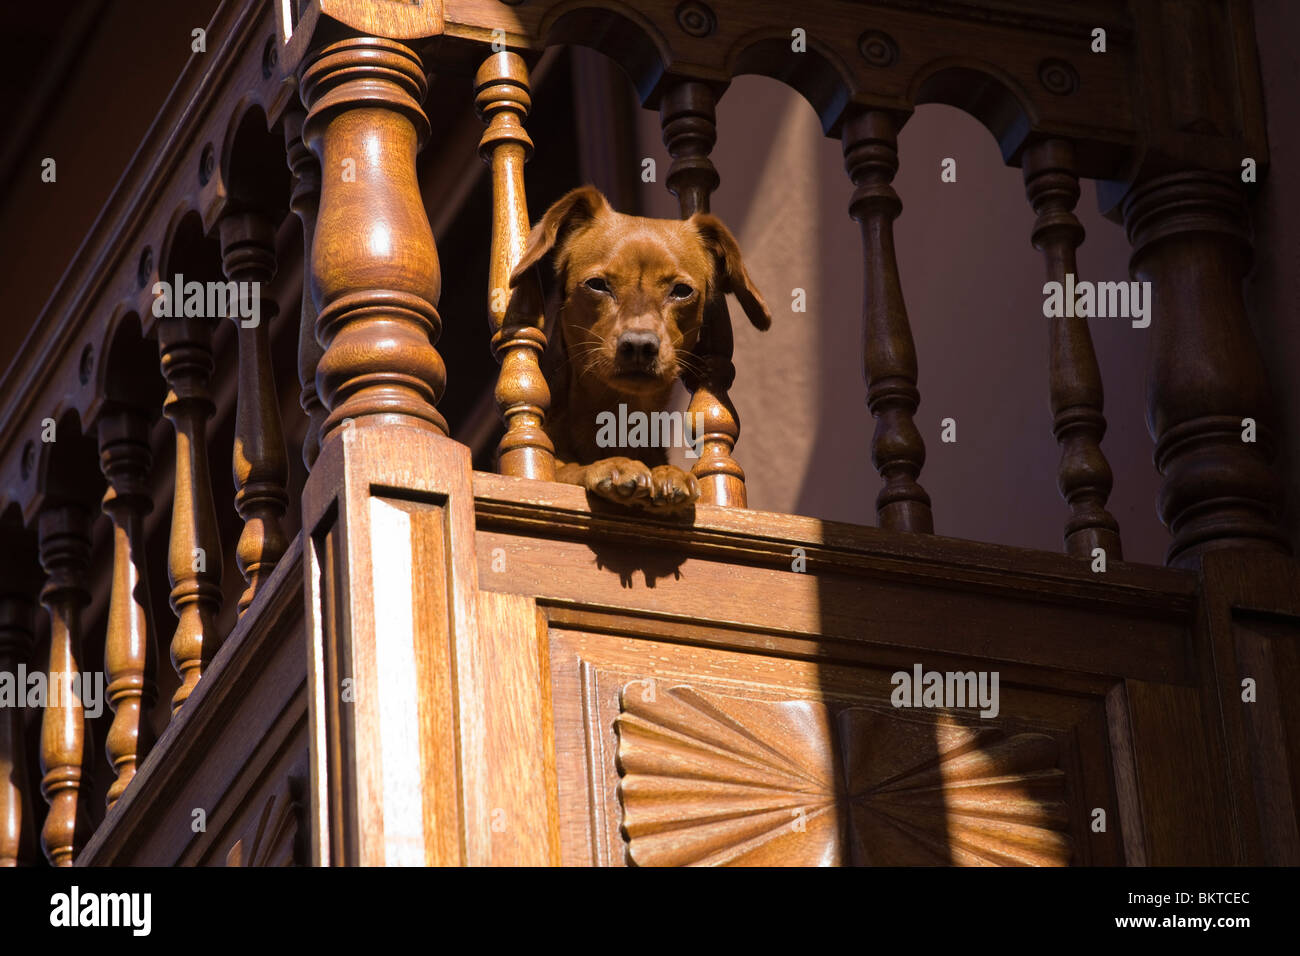 Interested dog looking down from a balcony - Stock Image